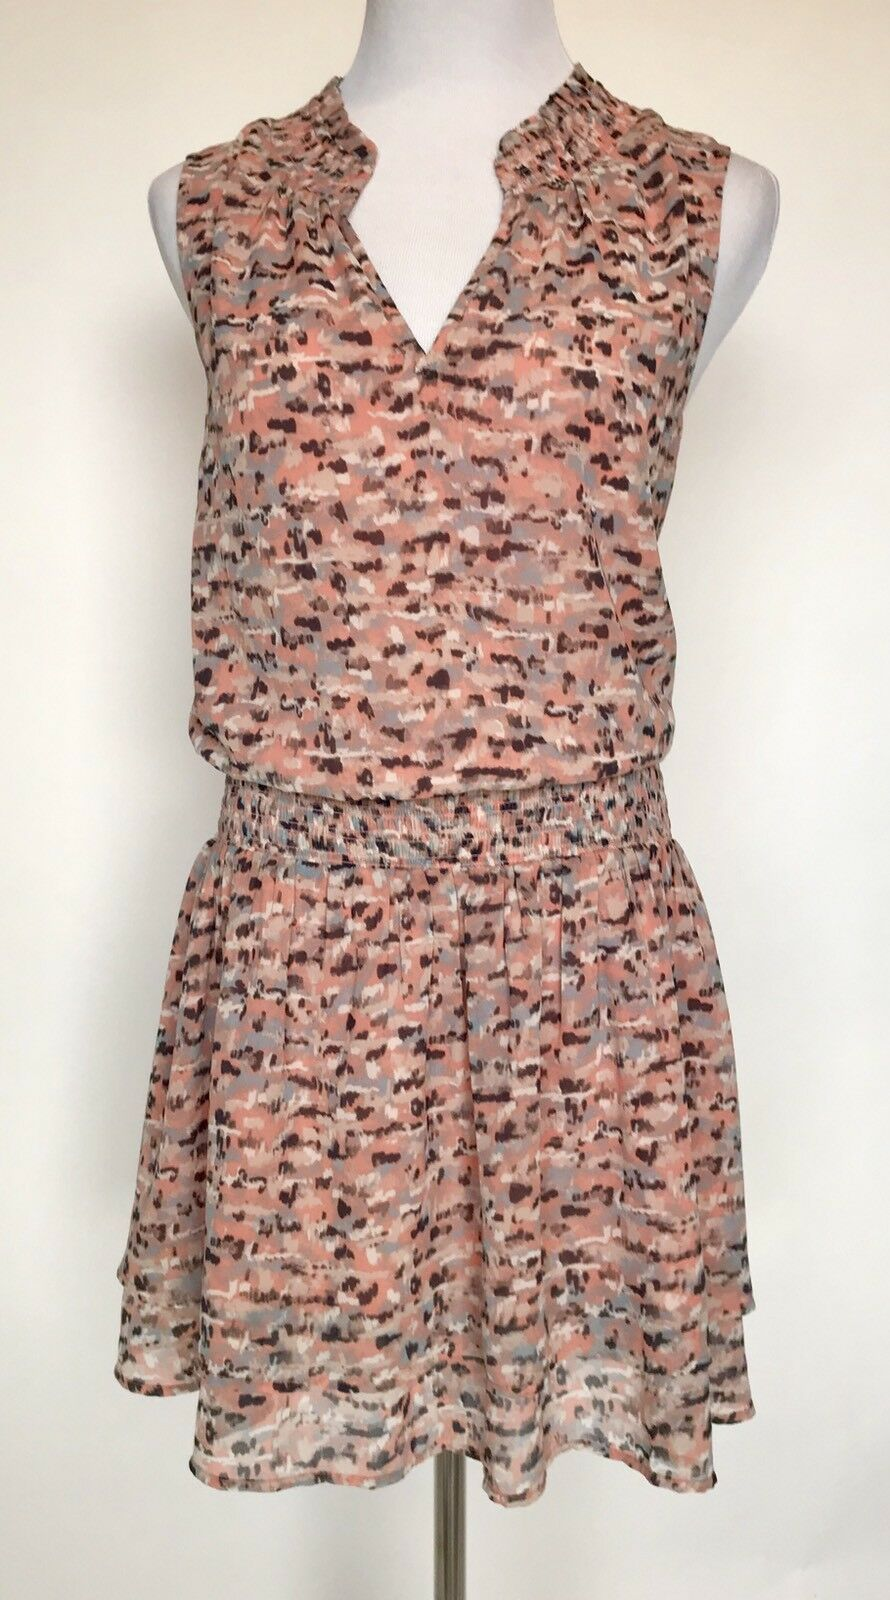 LUCKY BRAND Drop Waist Coral Print Dress. Size L Retail $89.50 Price $44 NWT